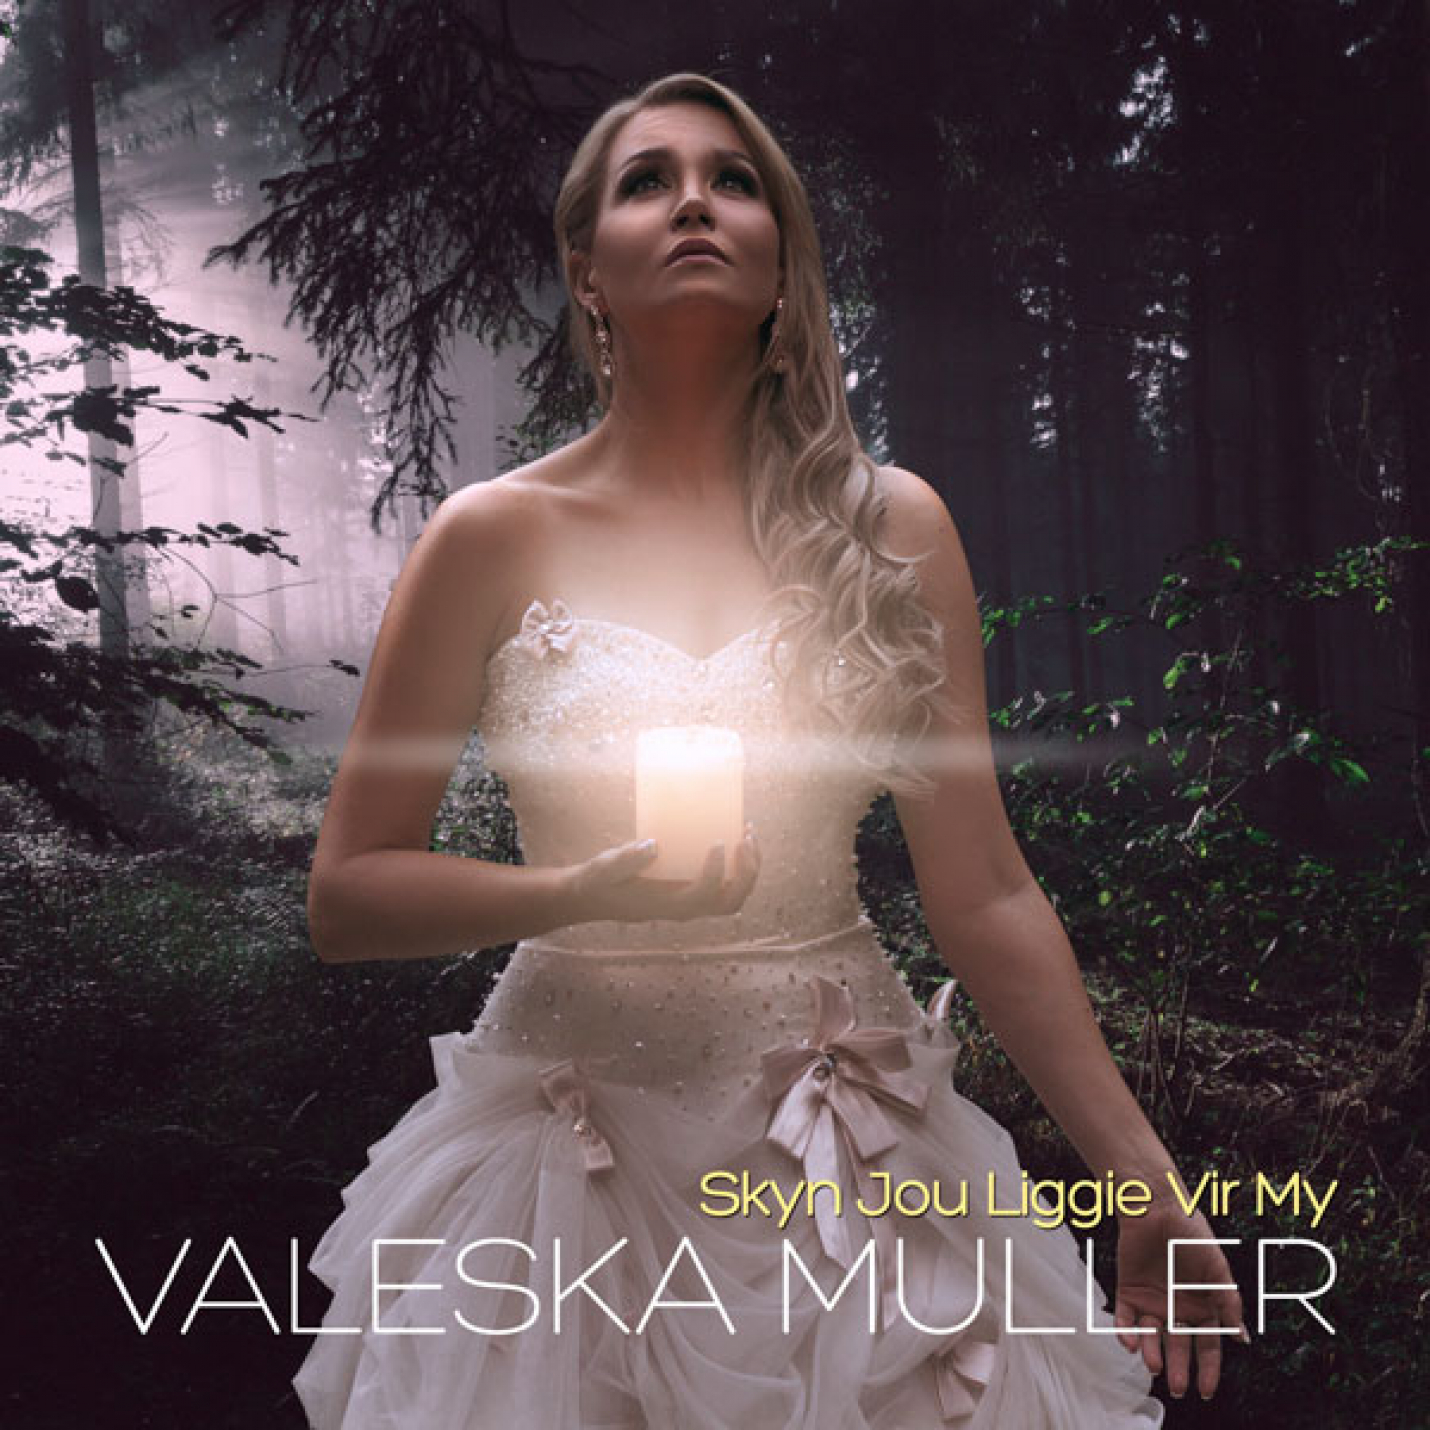 Valeska Muller Lights Up The Music Scene With New Single!